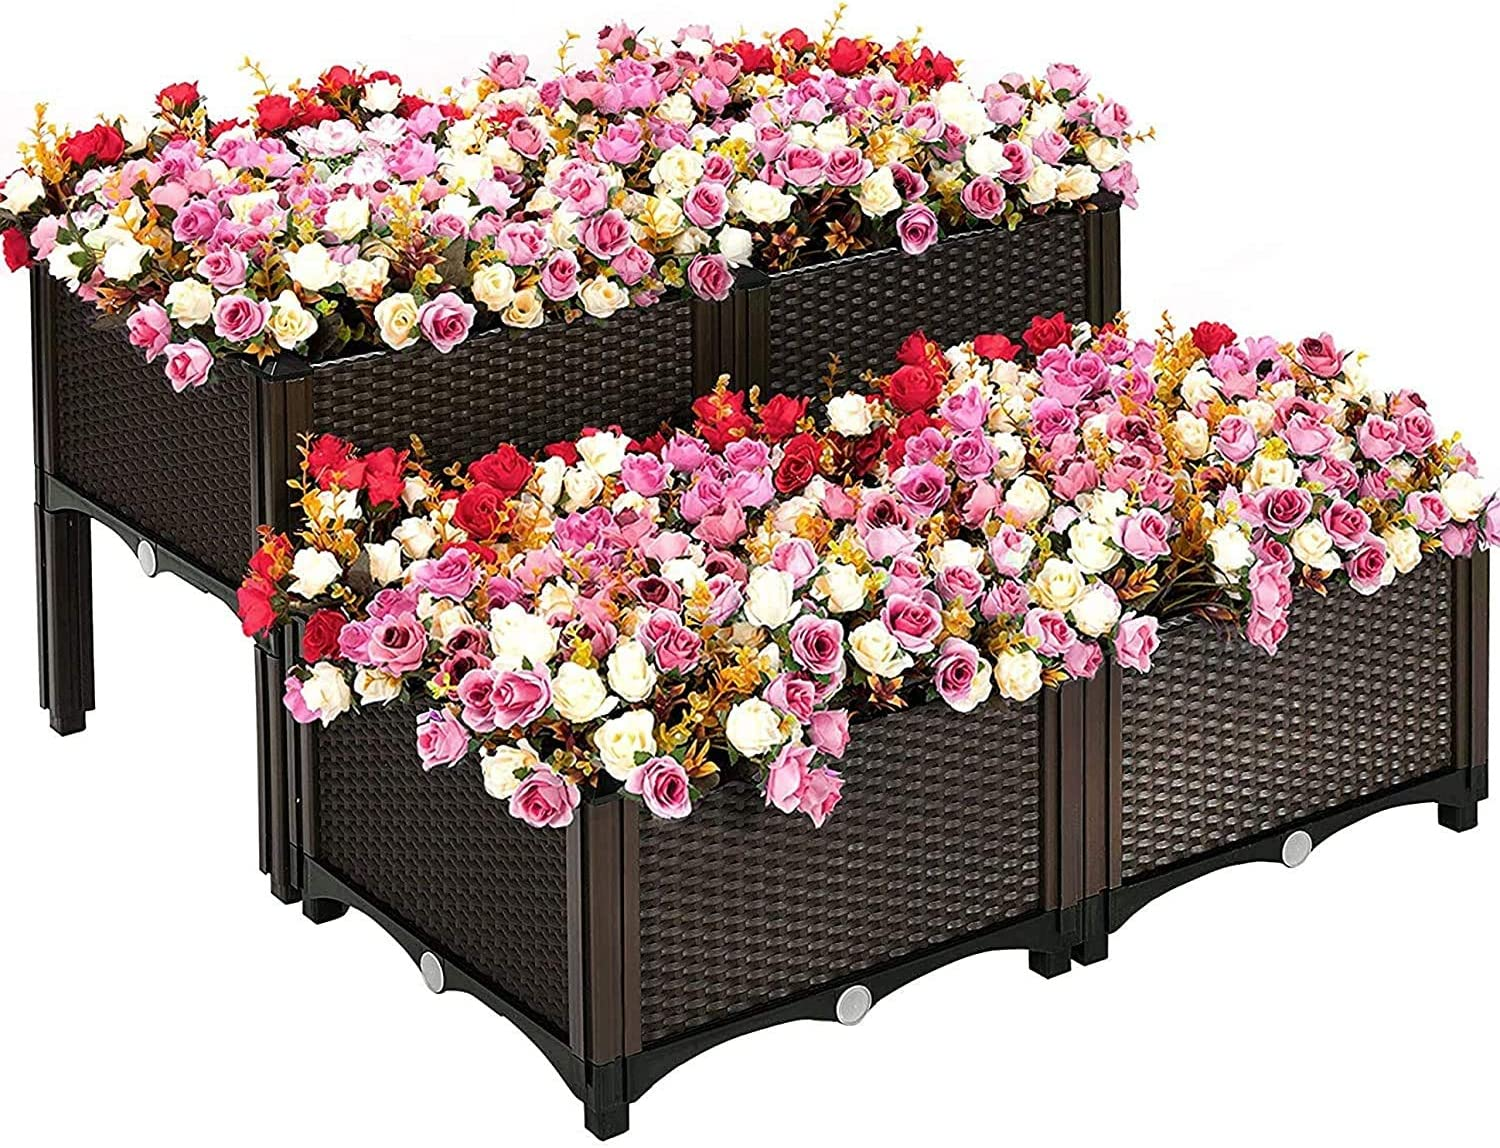 Miyaya Set of 4 Elevated Raised Garden Bed Planter Box for Flowers Vegetables Fruits Herbs, Vegetables Plant Raised Bed Kits, Outdoor Indoor Planting Box Container for Garden Patio Balcony Restaurant